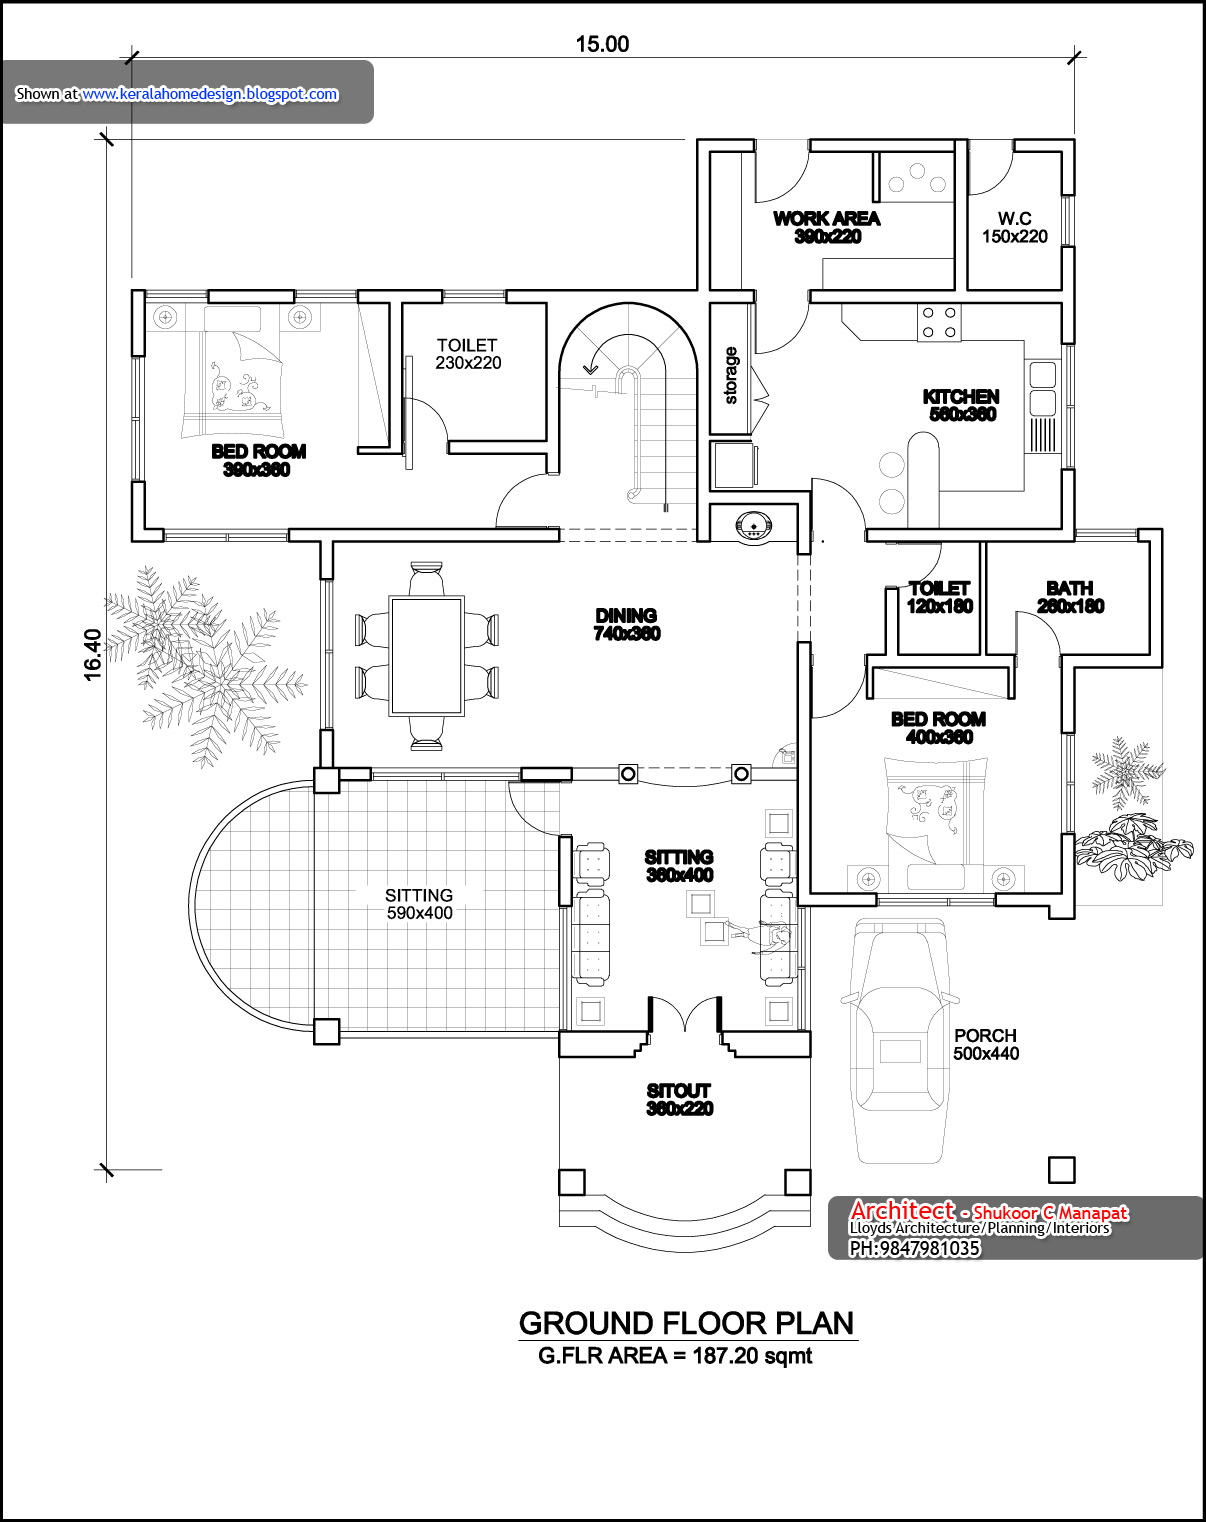 Kerala home plan elevation and floor plan - 3236 Sq FT ...